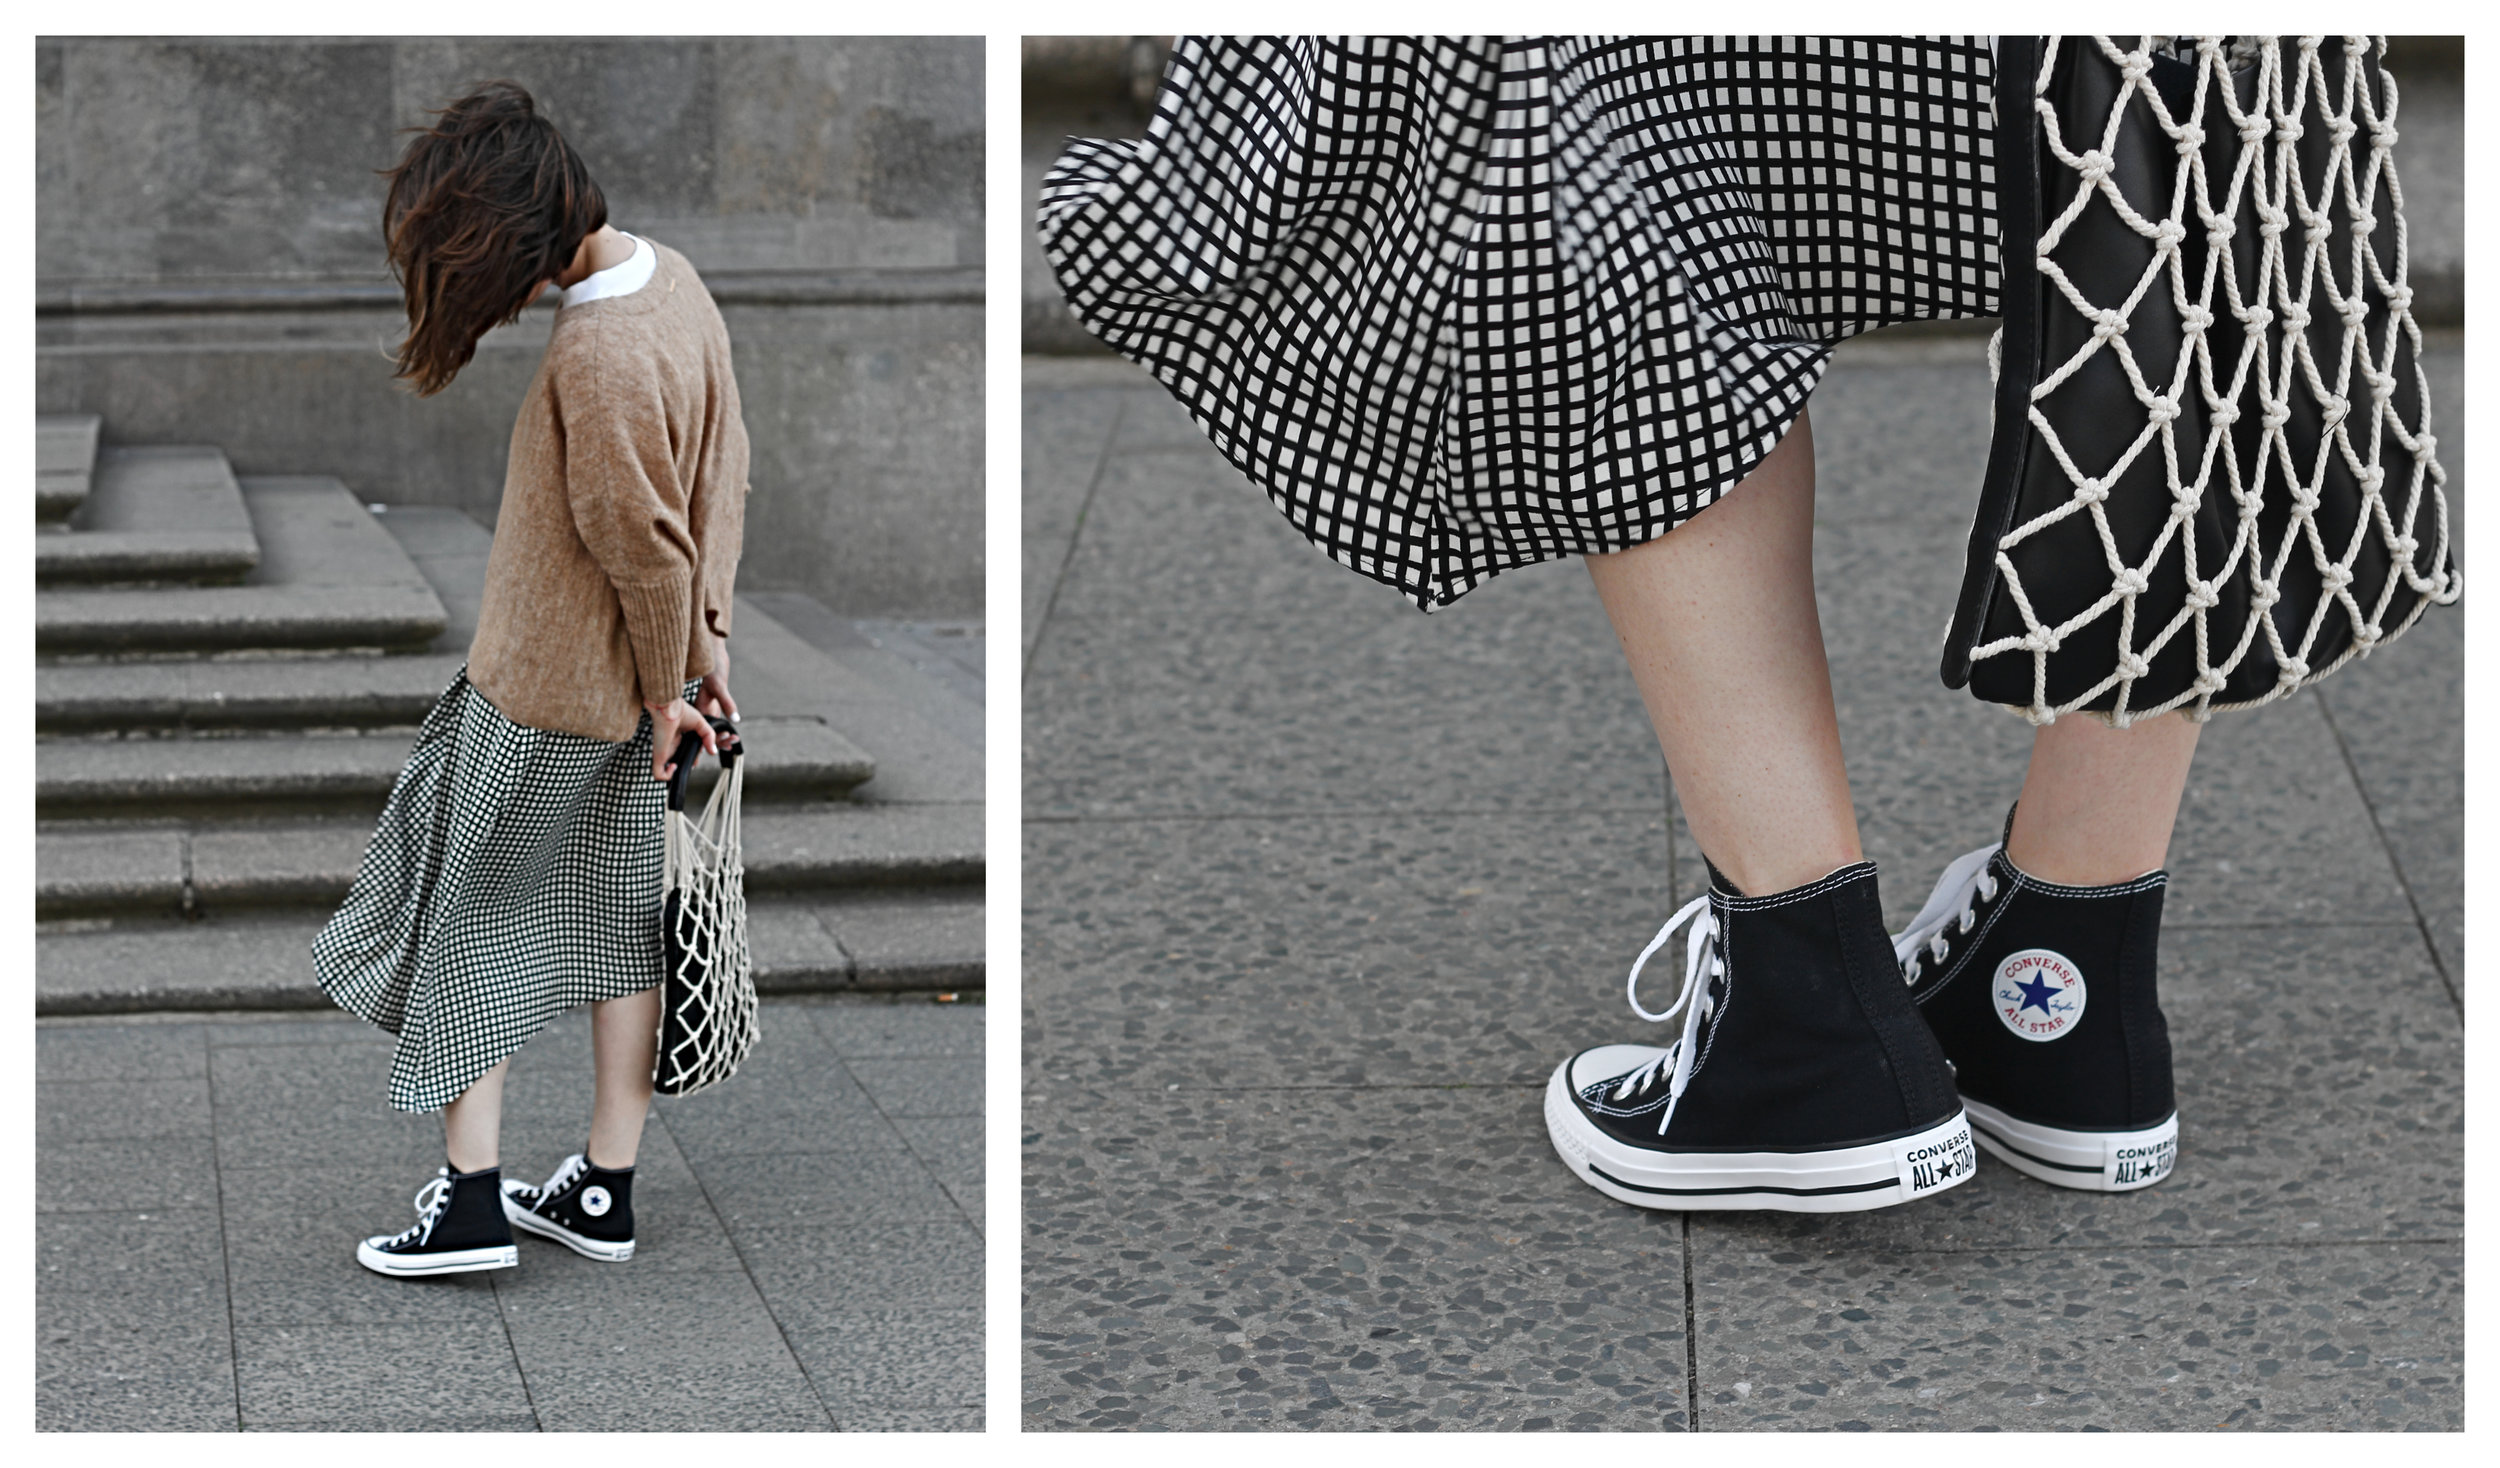 annaporter-fishnet-bag-camel-pullover-converse-high-sneakers-komono-sunglasses-collage